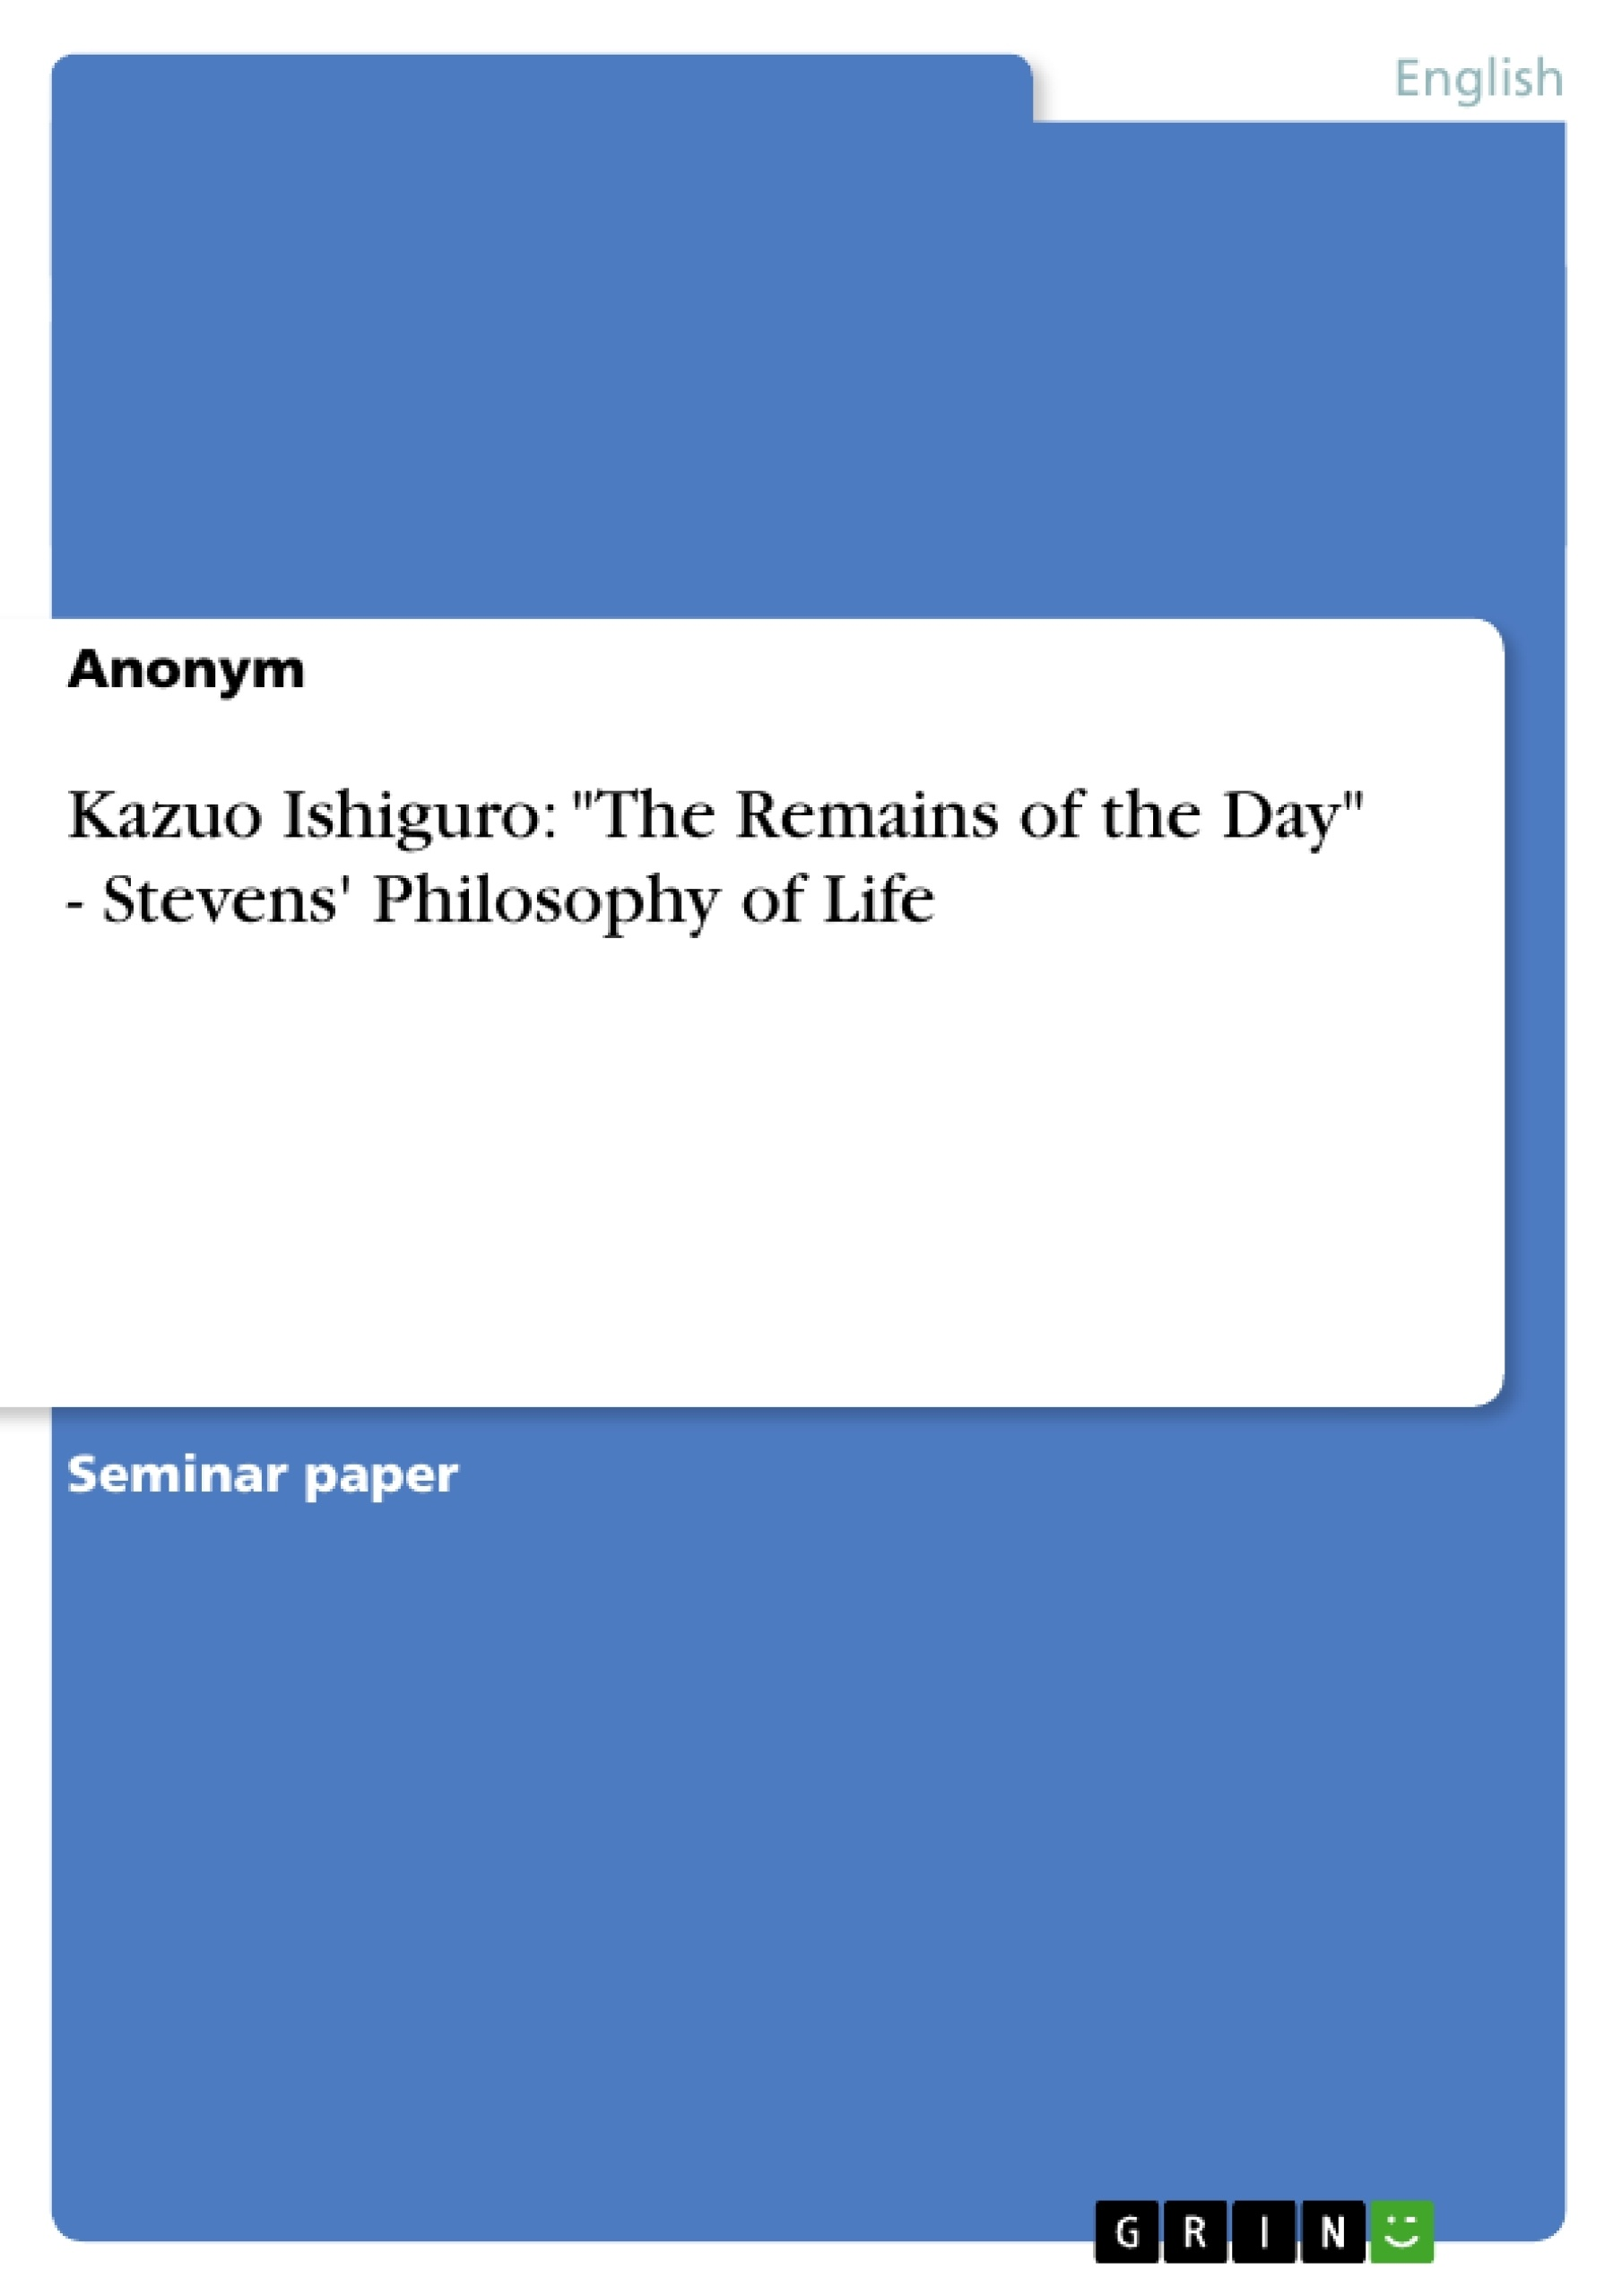 kazuo ishiguro the remains of the day stevens philosophy of kazuo ishiguro the remains of the day stevens philosophy of life publish your master s thesis bachelor s thesis essay or term paper